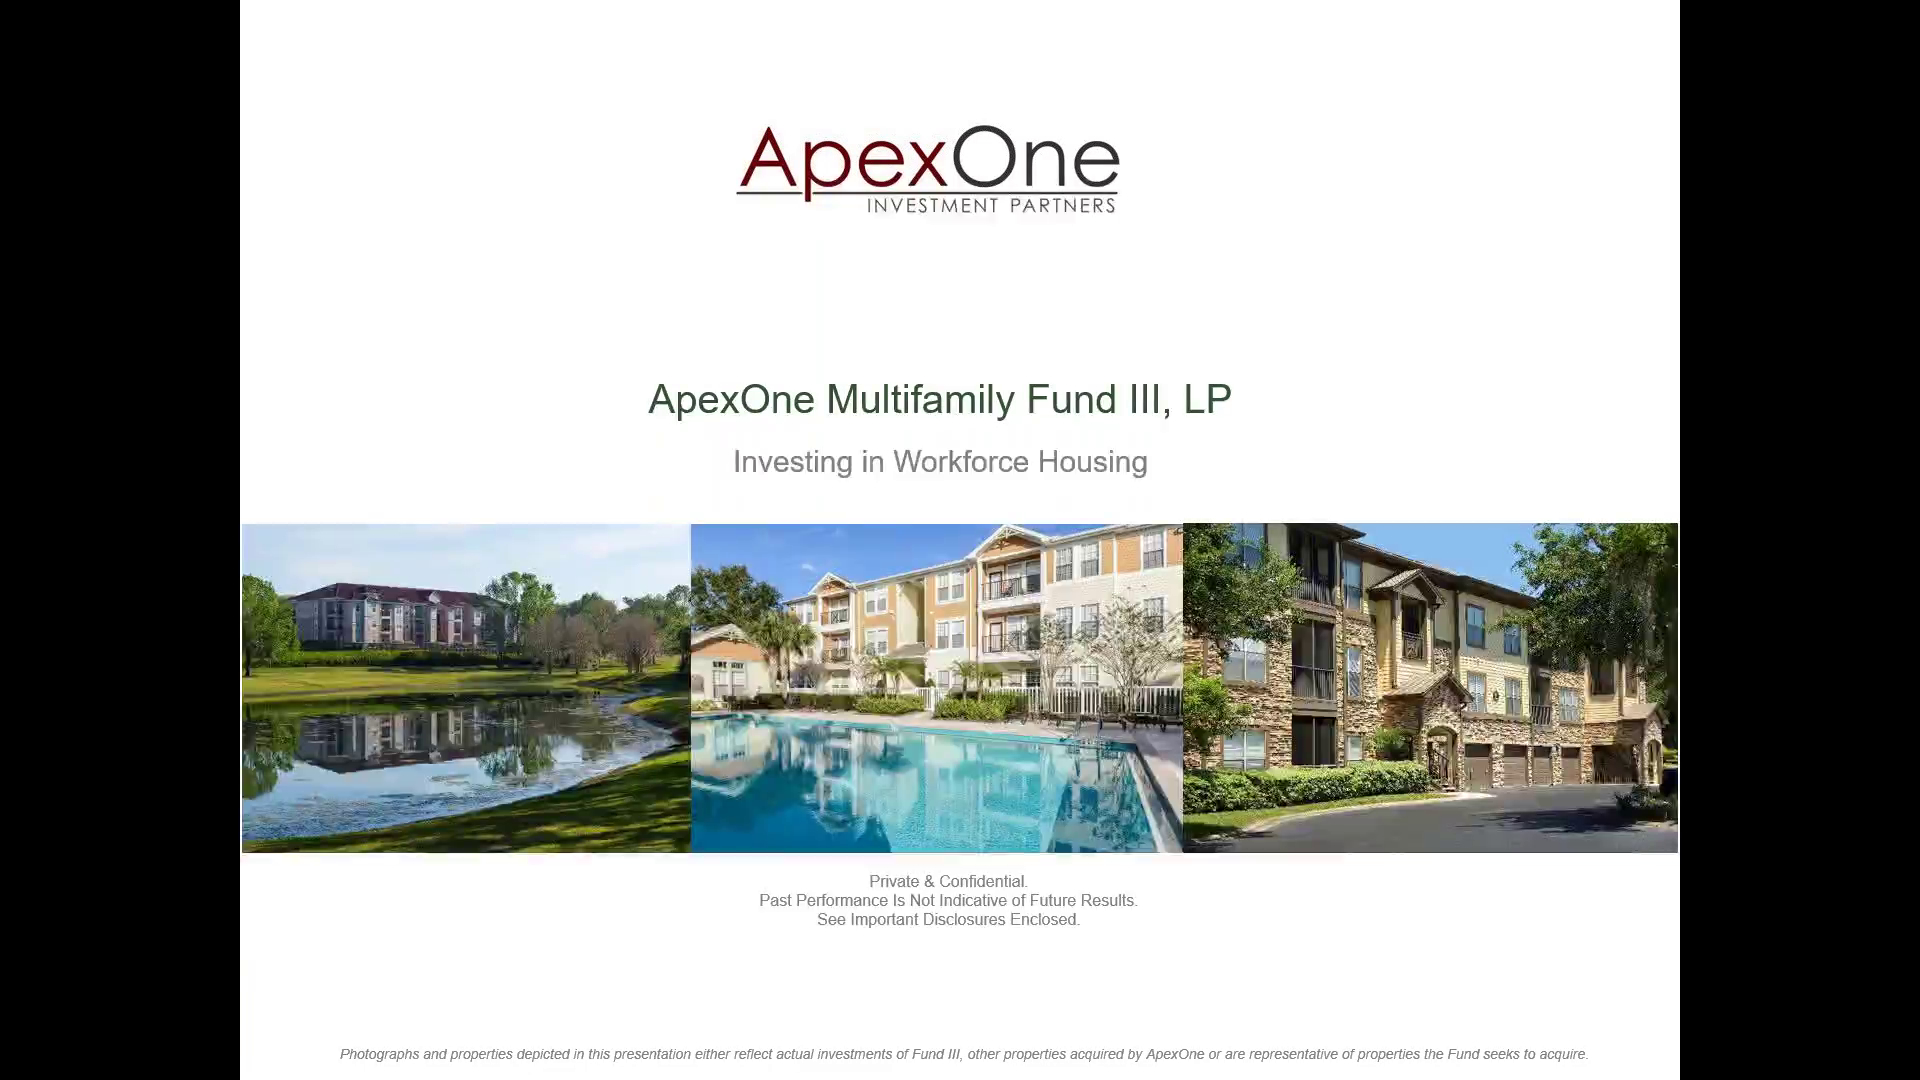 Investment Video - ApexOne Multifamily Fund III, LP